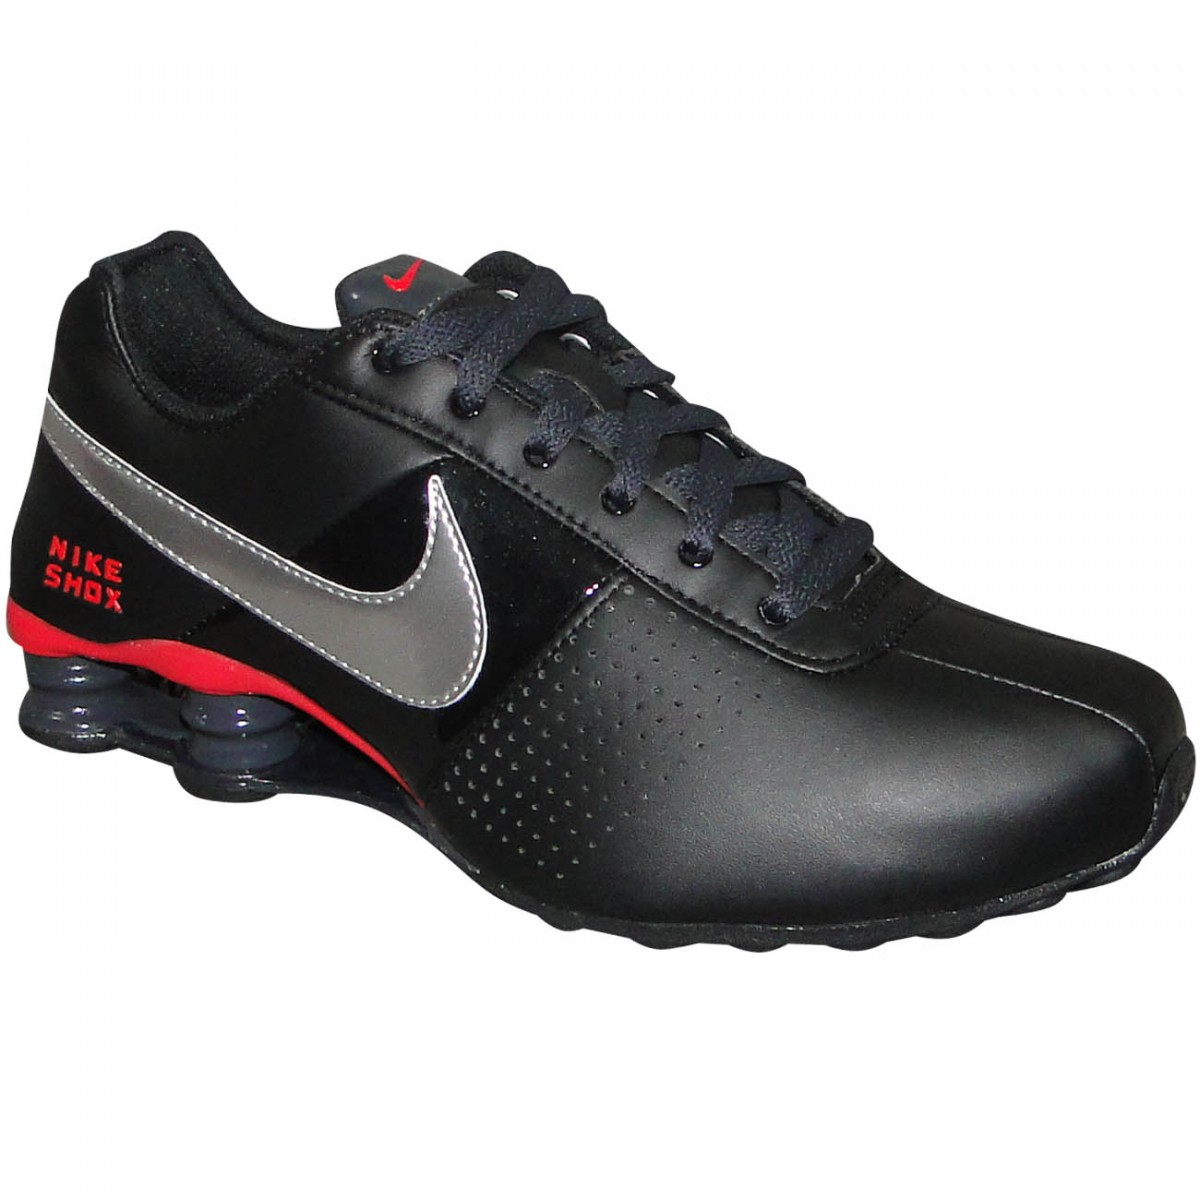 58bcc76d1eb Tenis Nike Shox Deliver. ZOOM ...